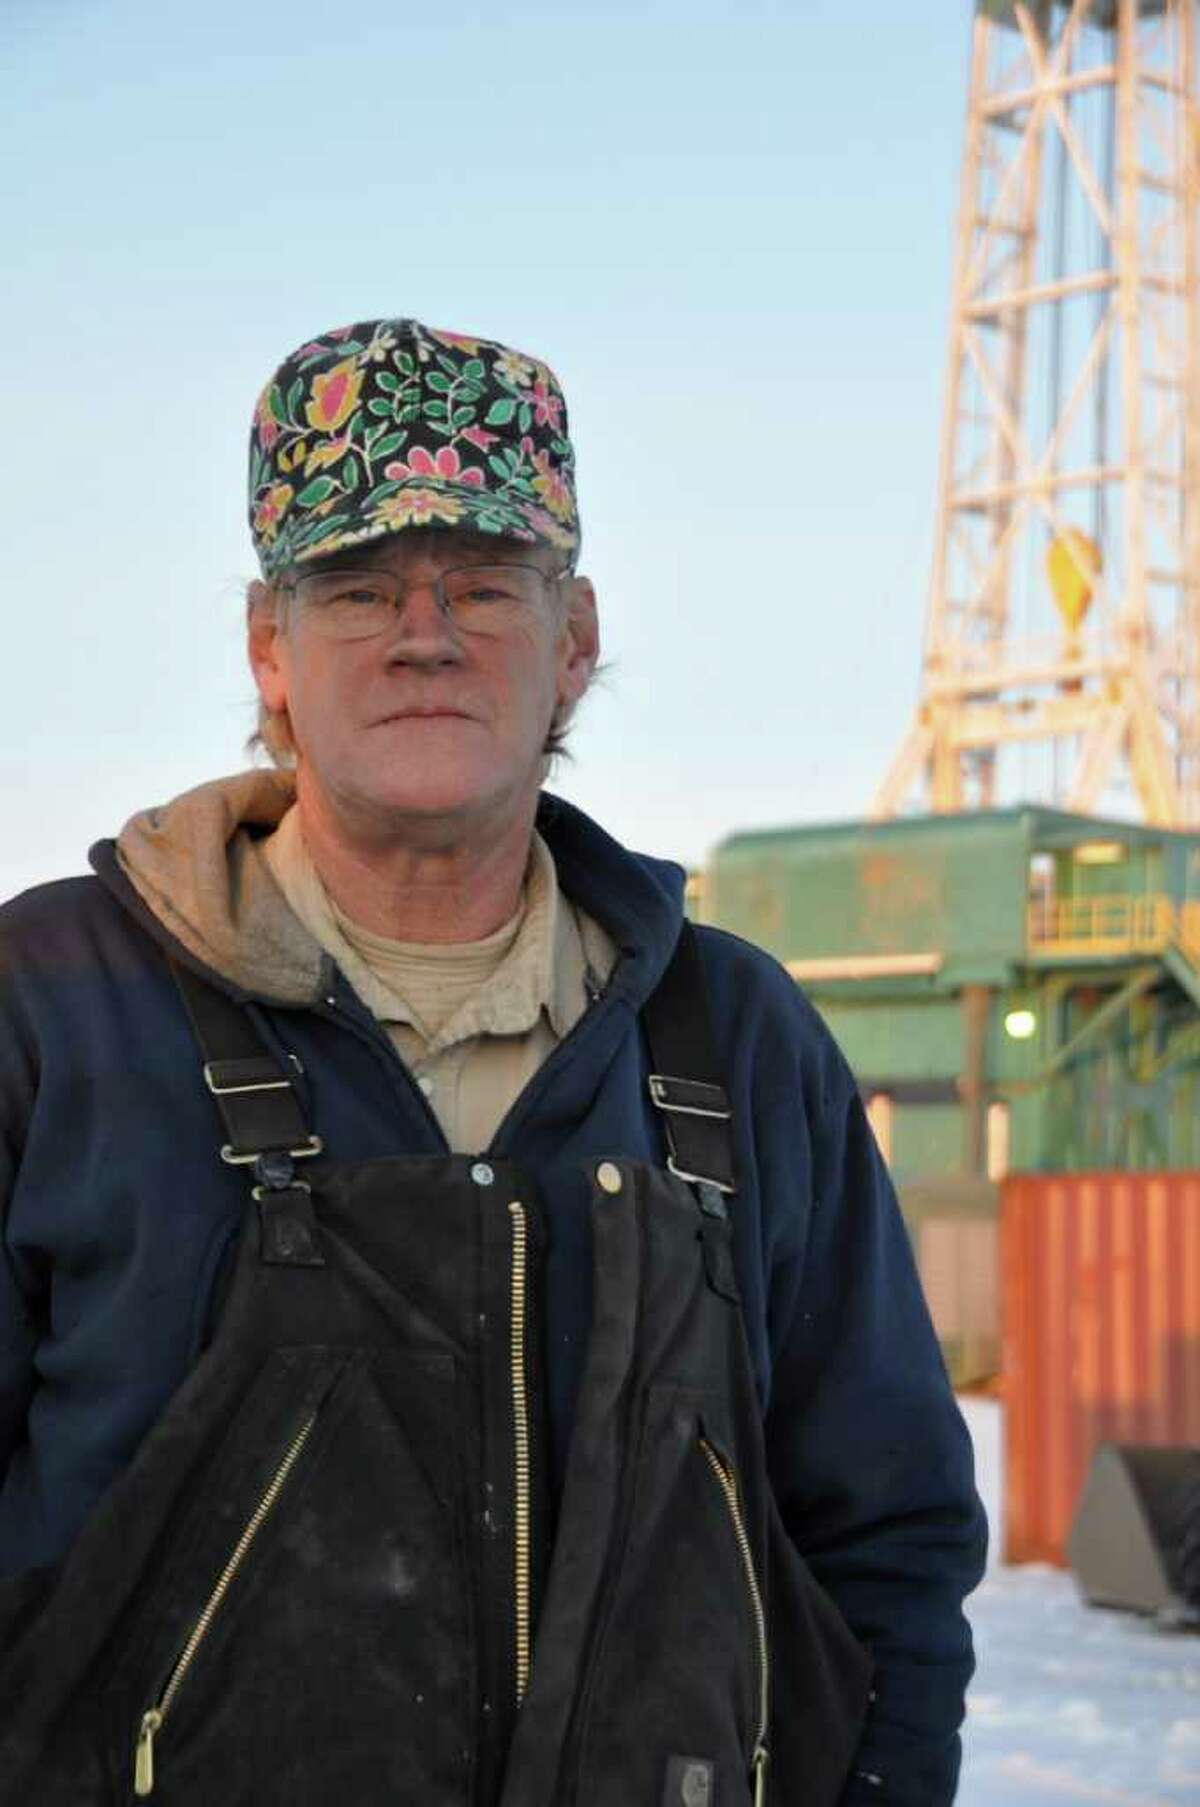 In this undated publicity image released by Planet Green, Larry Walsh, an oil rig worker, is shown at a drilling site in Parshall, N.D. Planet Green's